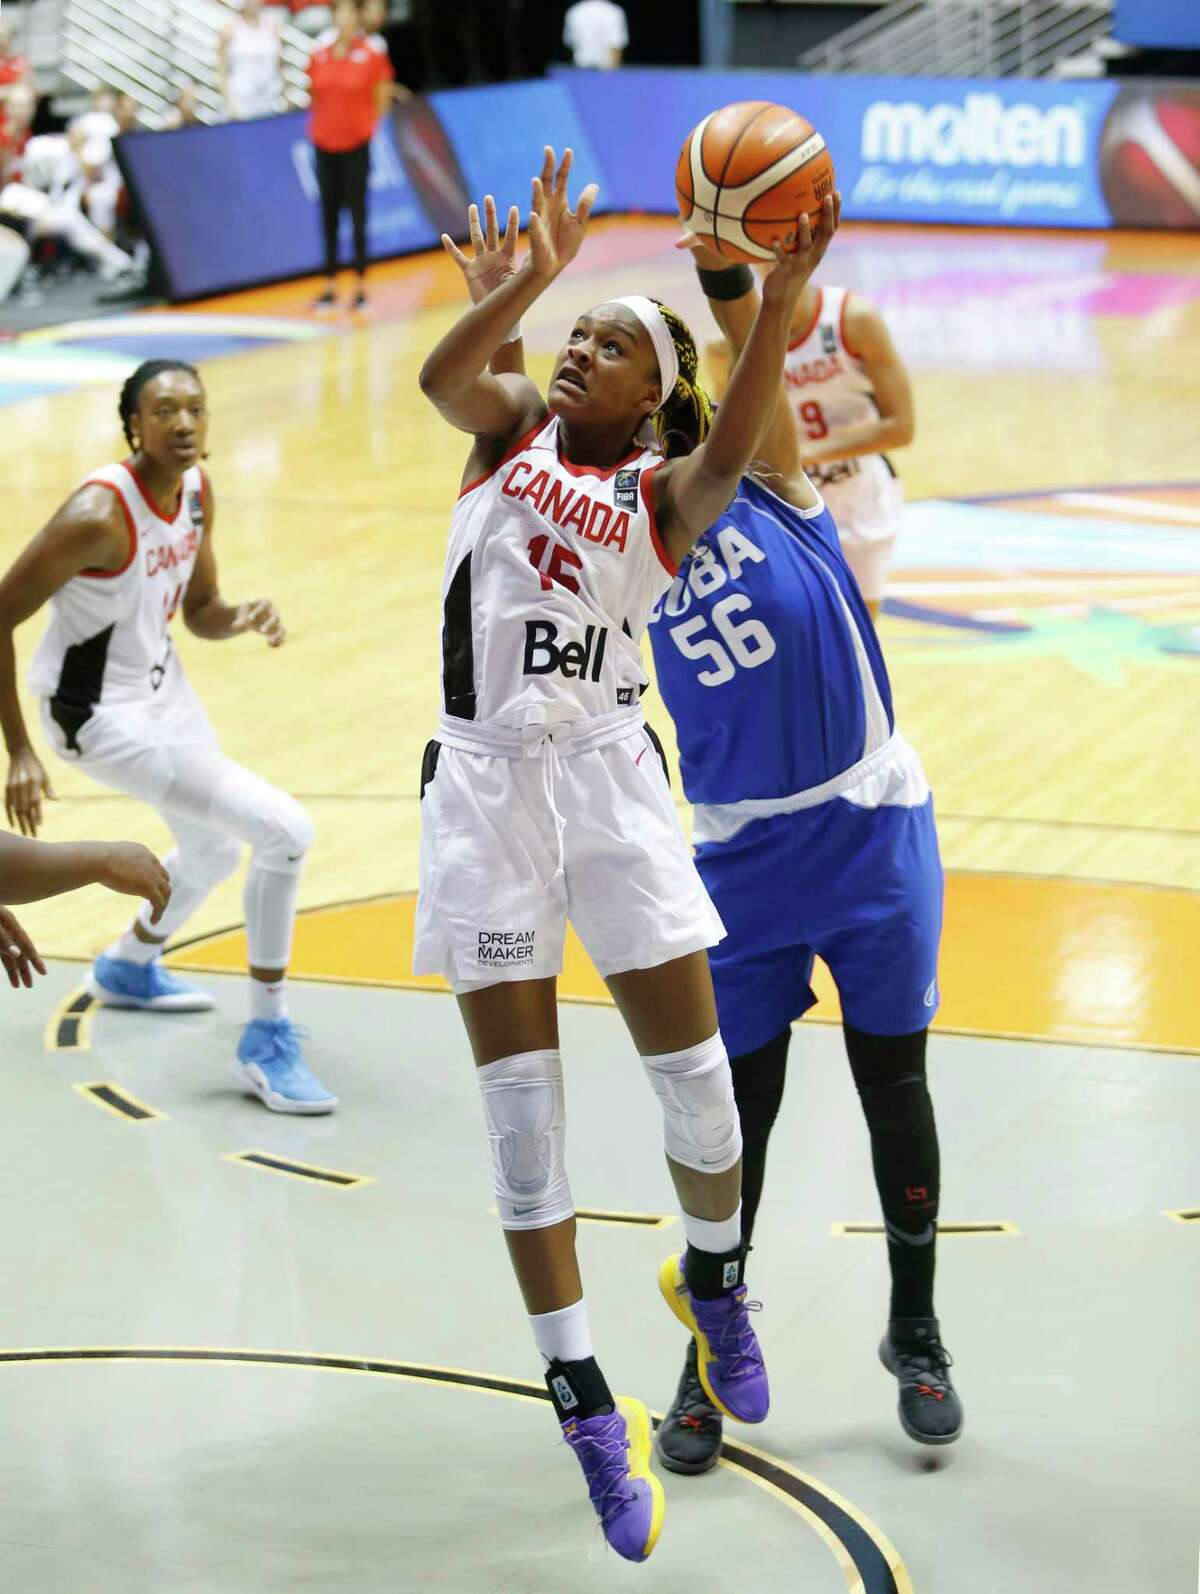 """Geno Auriemma says freshmen Aaliyah Edwards, shown here, and Nika Muhl are """"really exceptionally physical and intense and play really hard. They want to try to win every single thing that they do."""""""